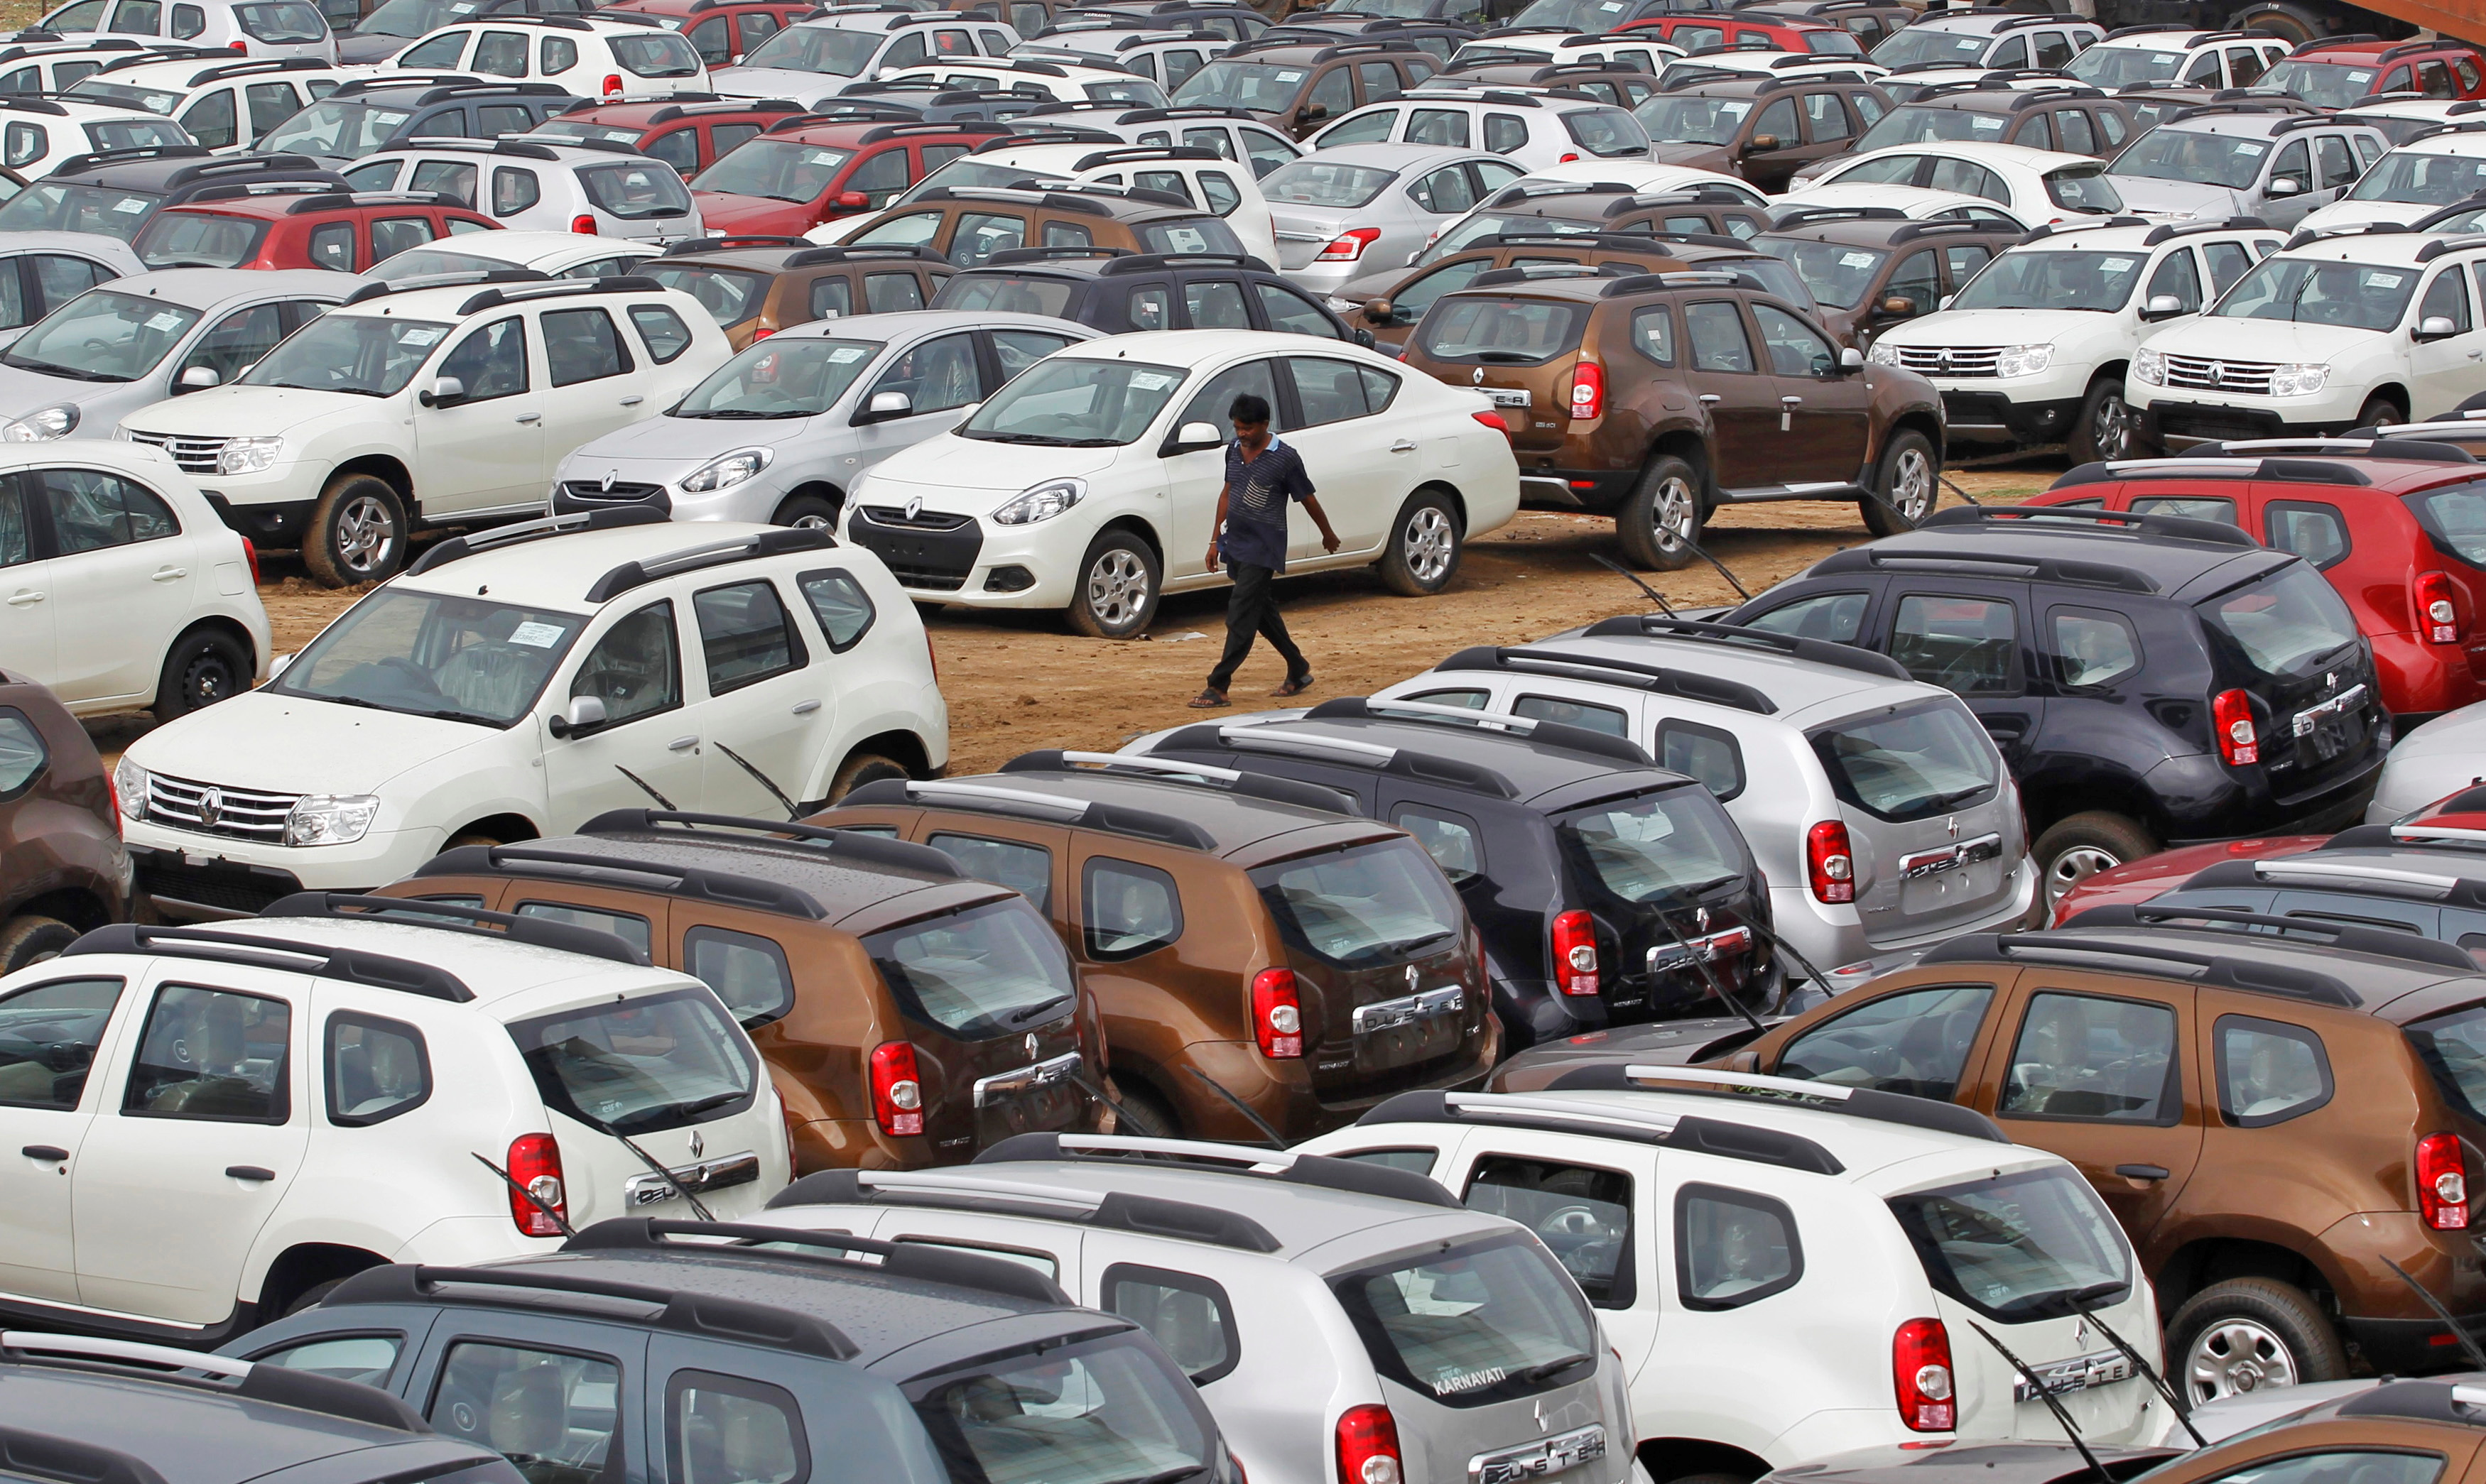 A worker walks past parked Renault cars at its stockyard on the outskirts of the western Indian city of Ahmedabad June 11, 2013. REUTERS/Amit Dave